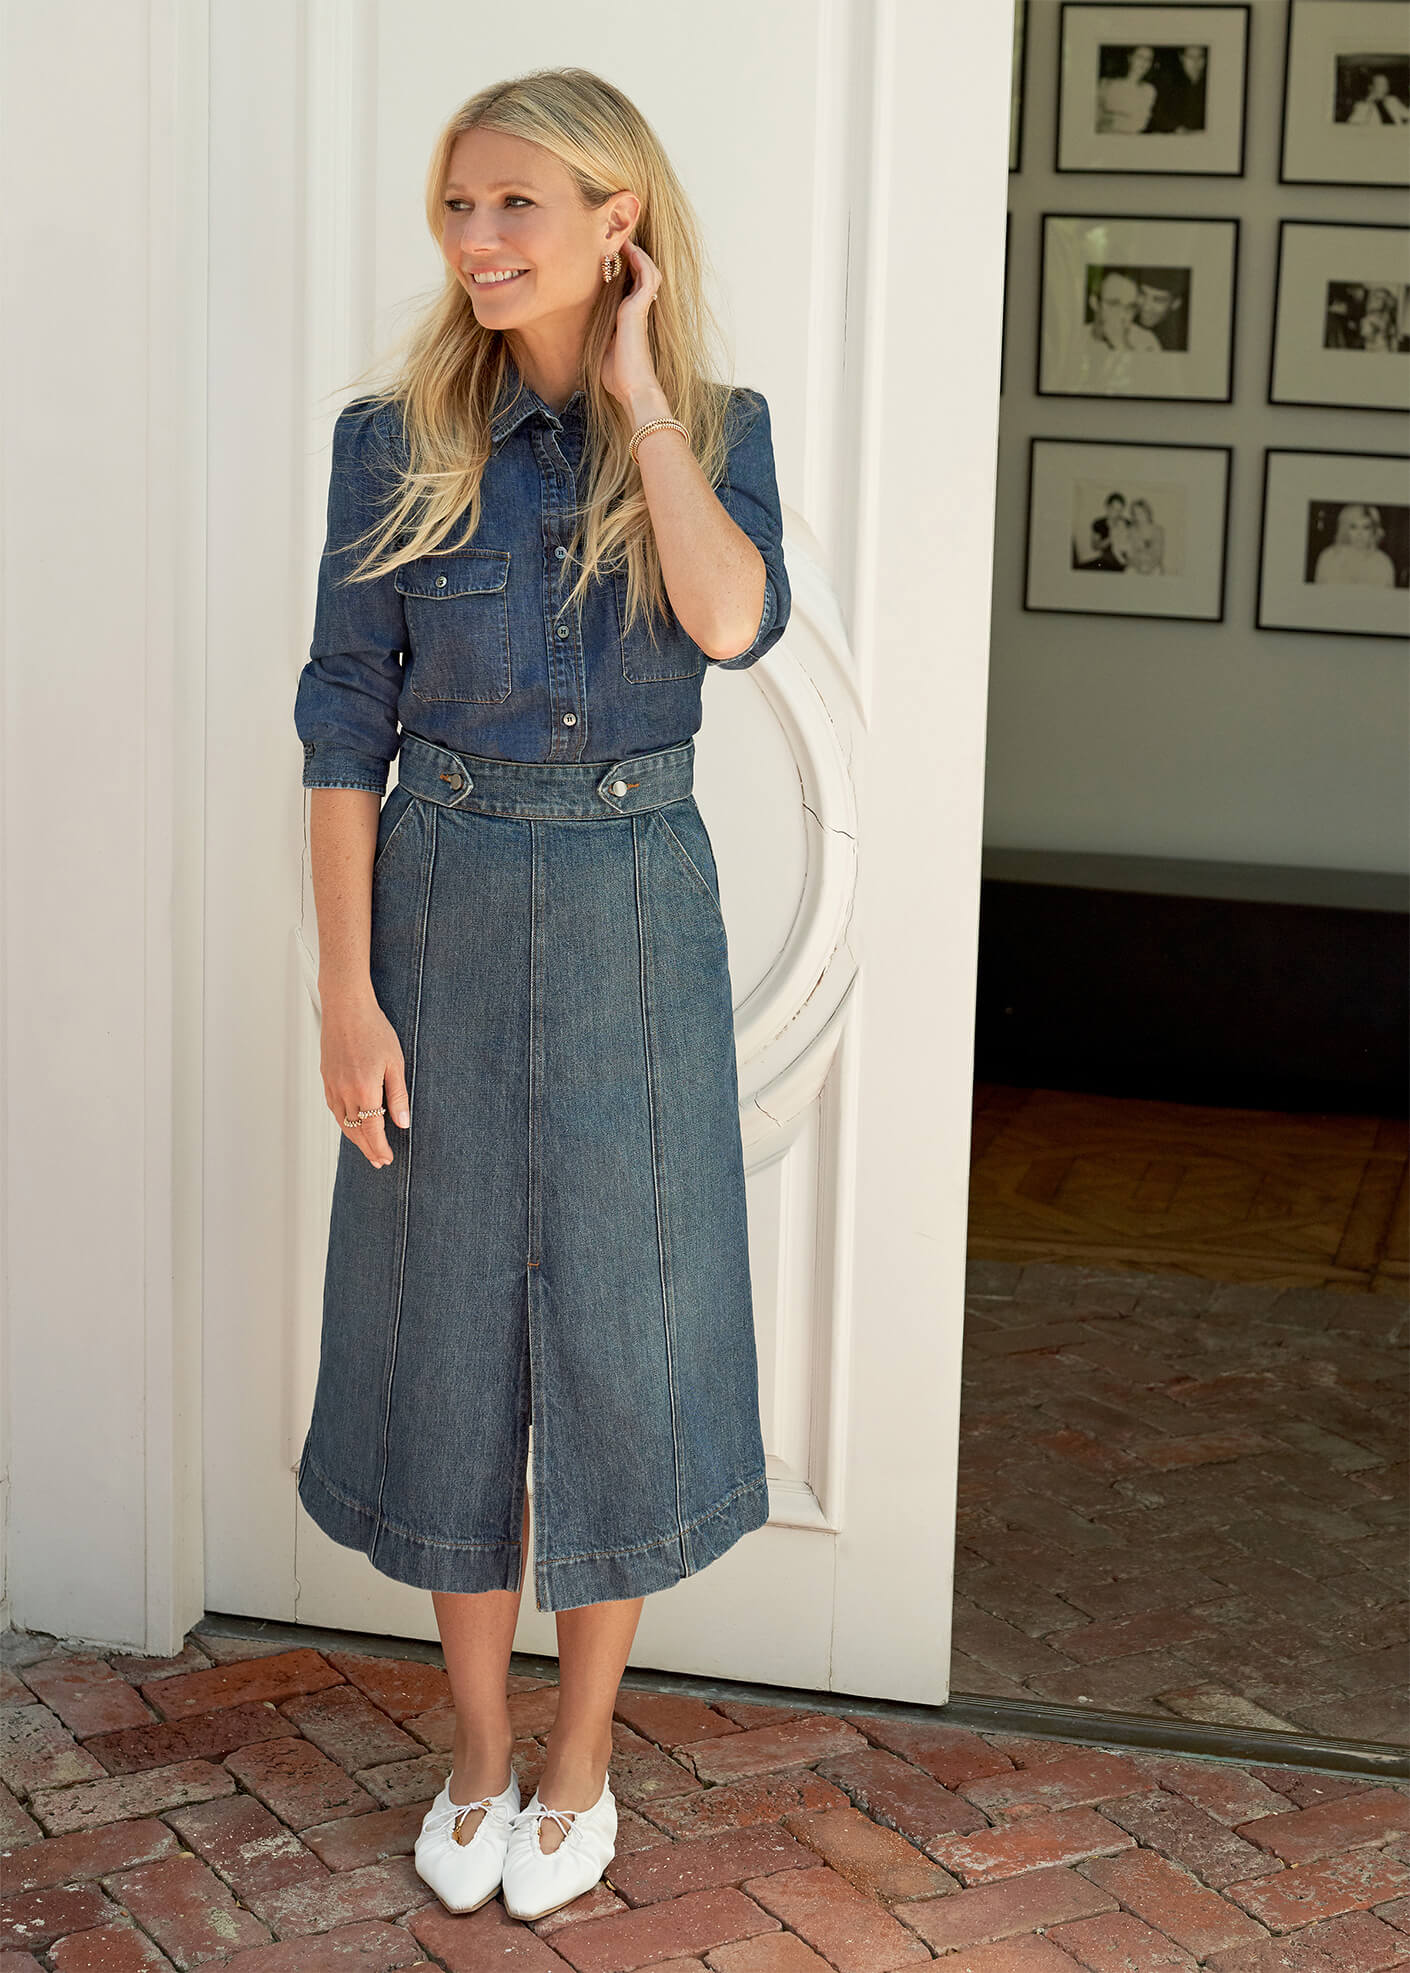 Gwyneth Paltrow with the Greer A-Line Mid-Length Skirt